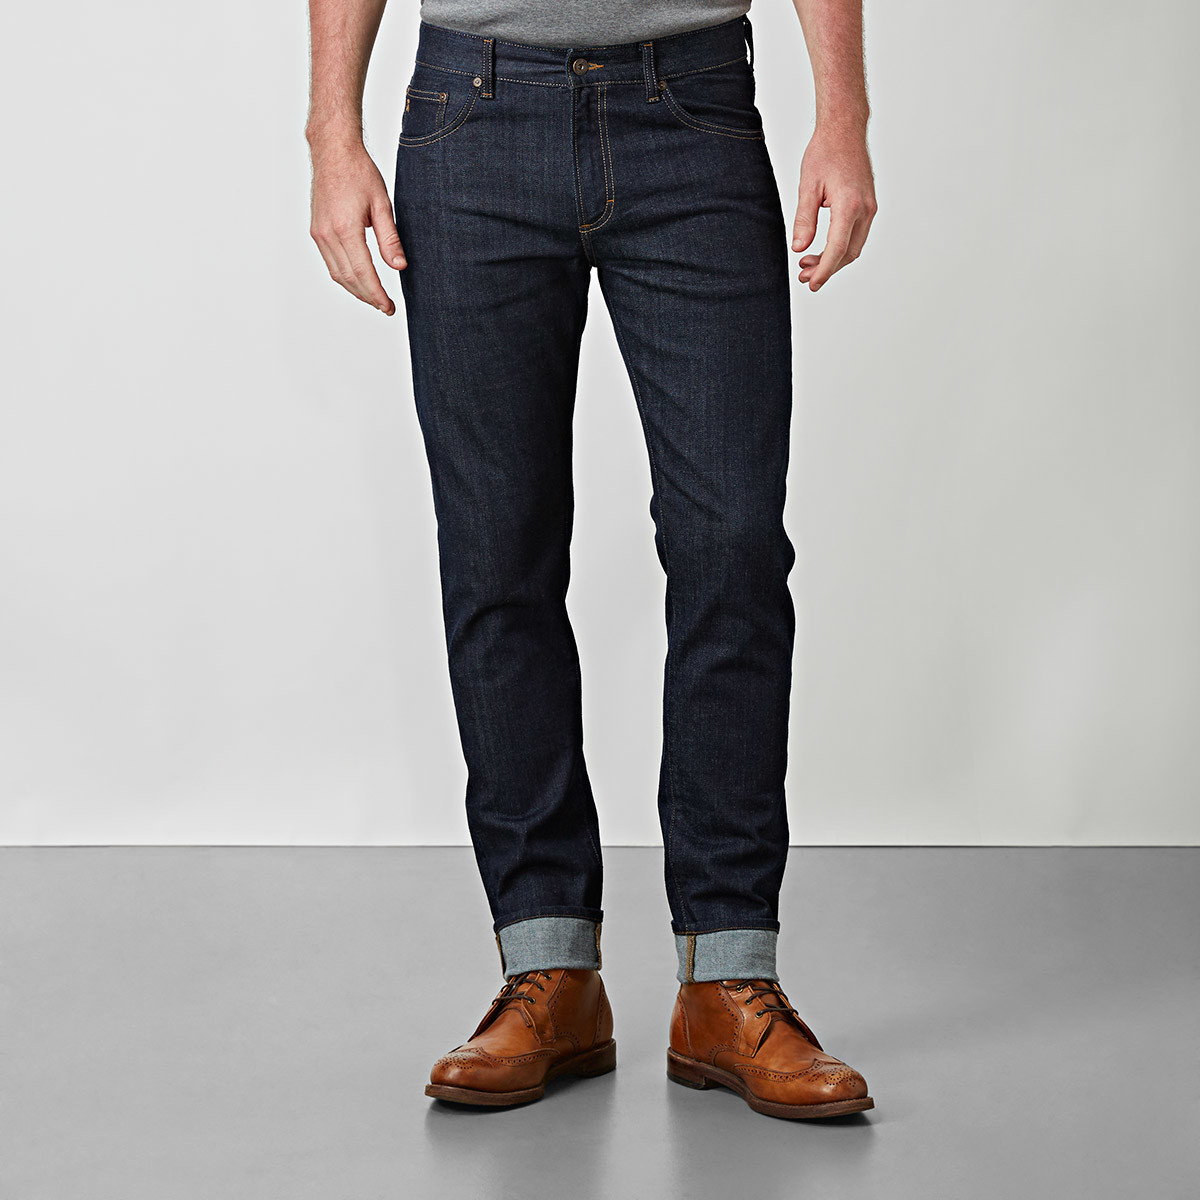 BOWERY BLUE RINSE JEANS